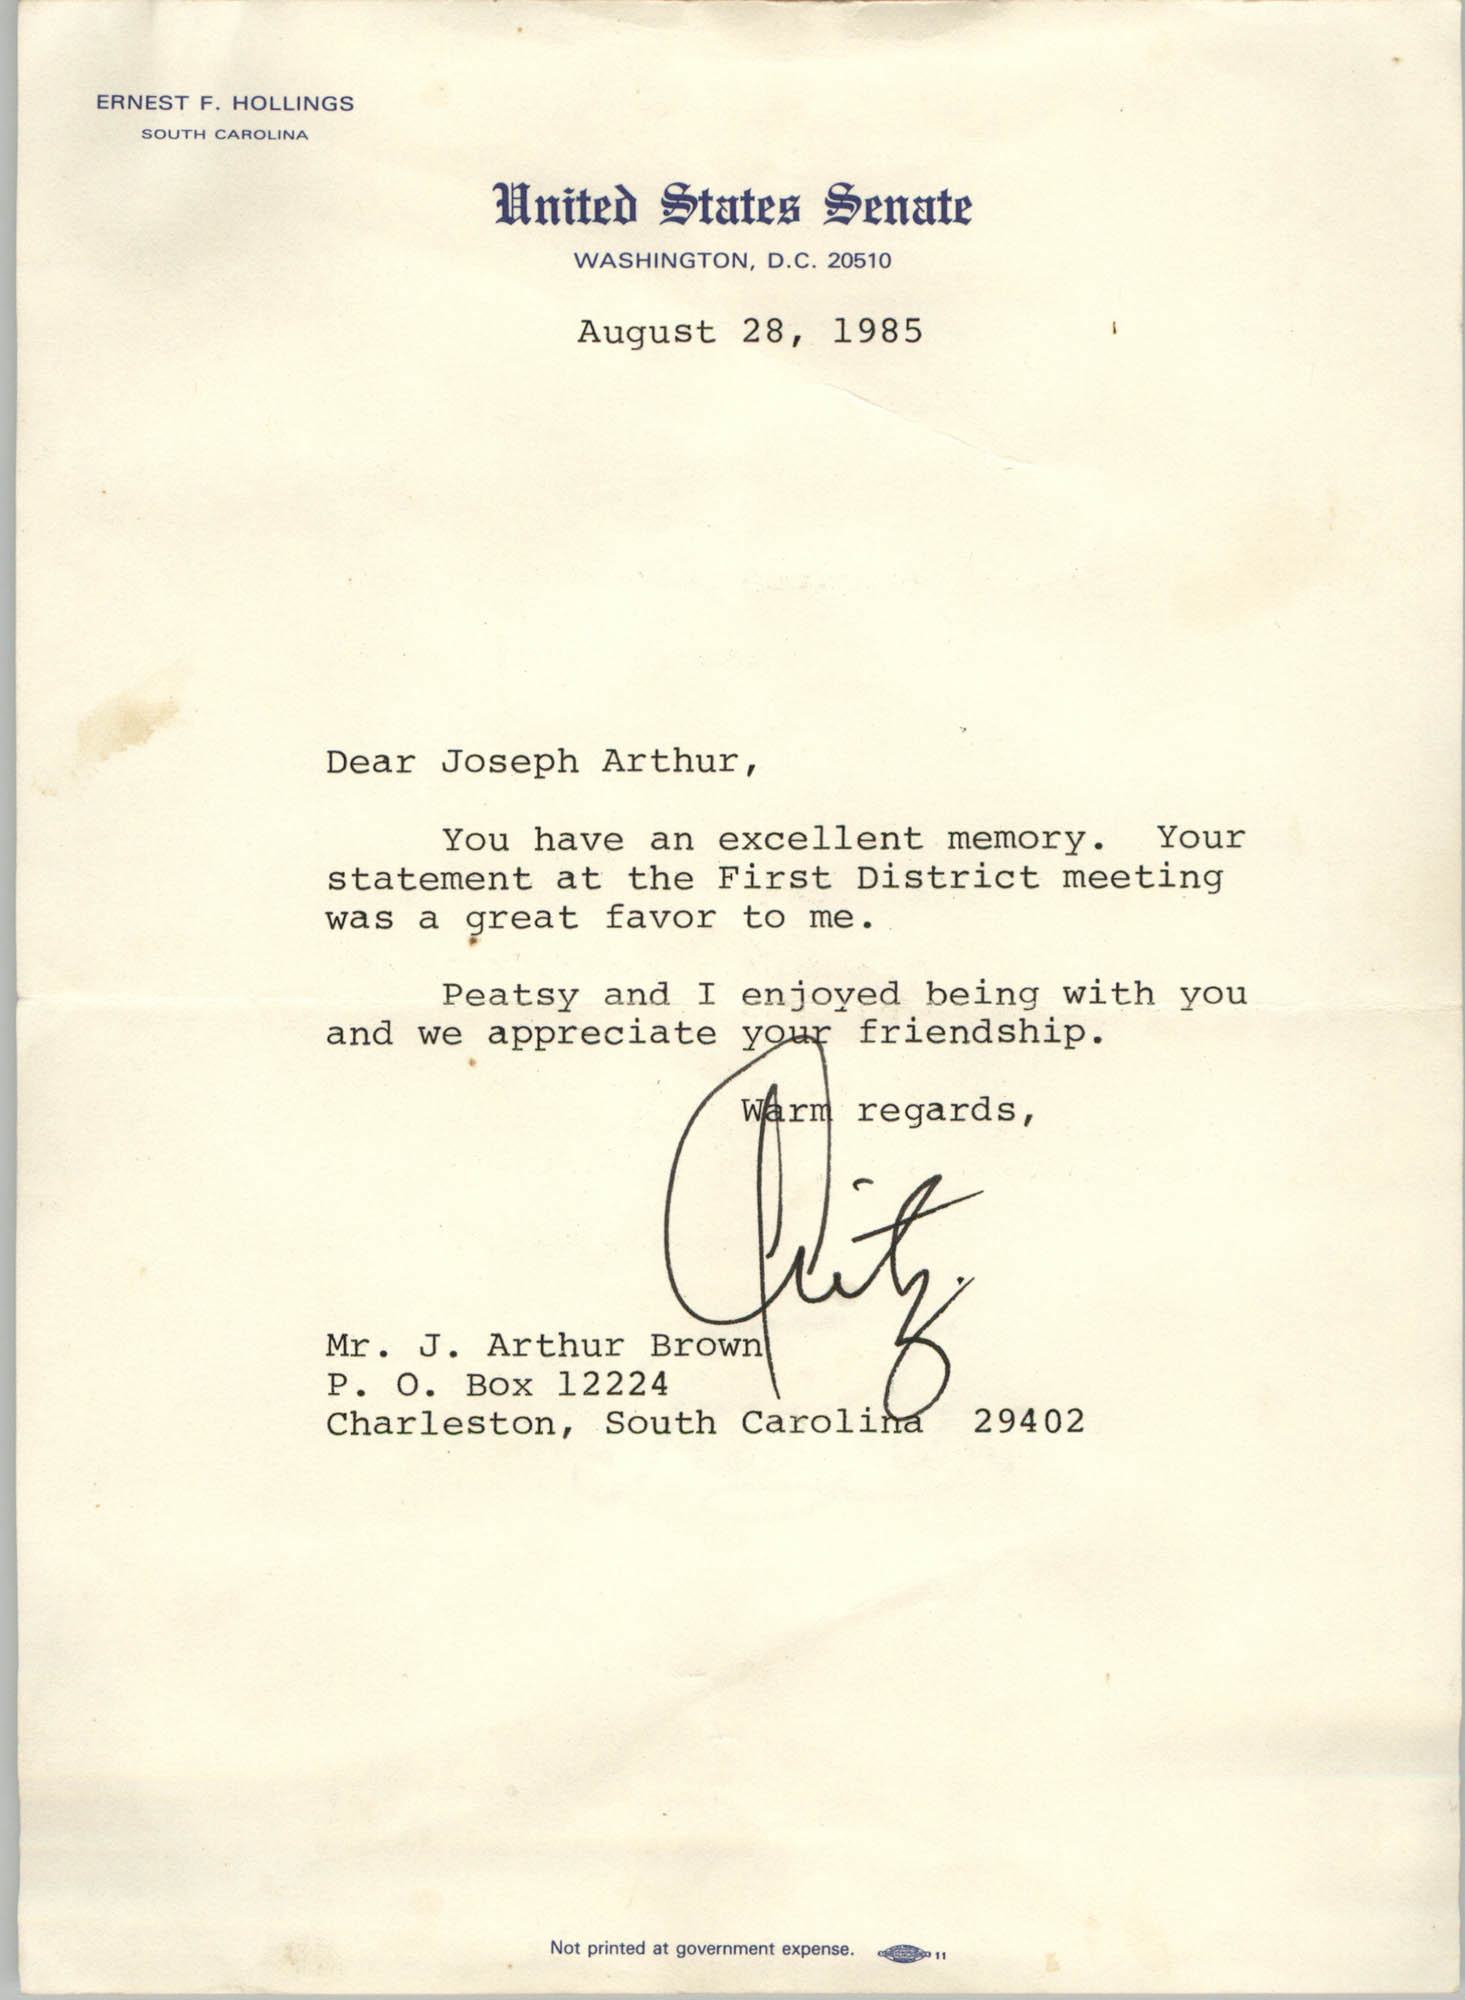 Letter from Ernest F. Hollings to J. Arthur Brown, August 28, 1985